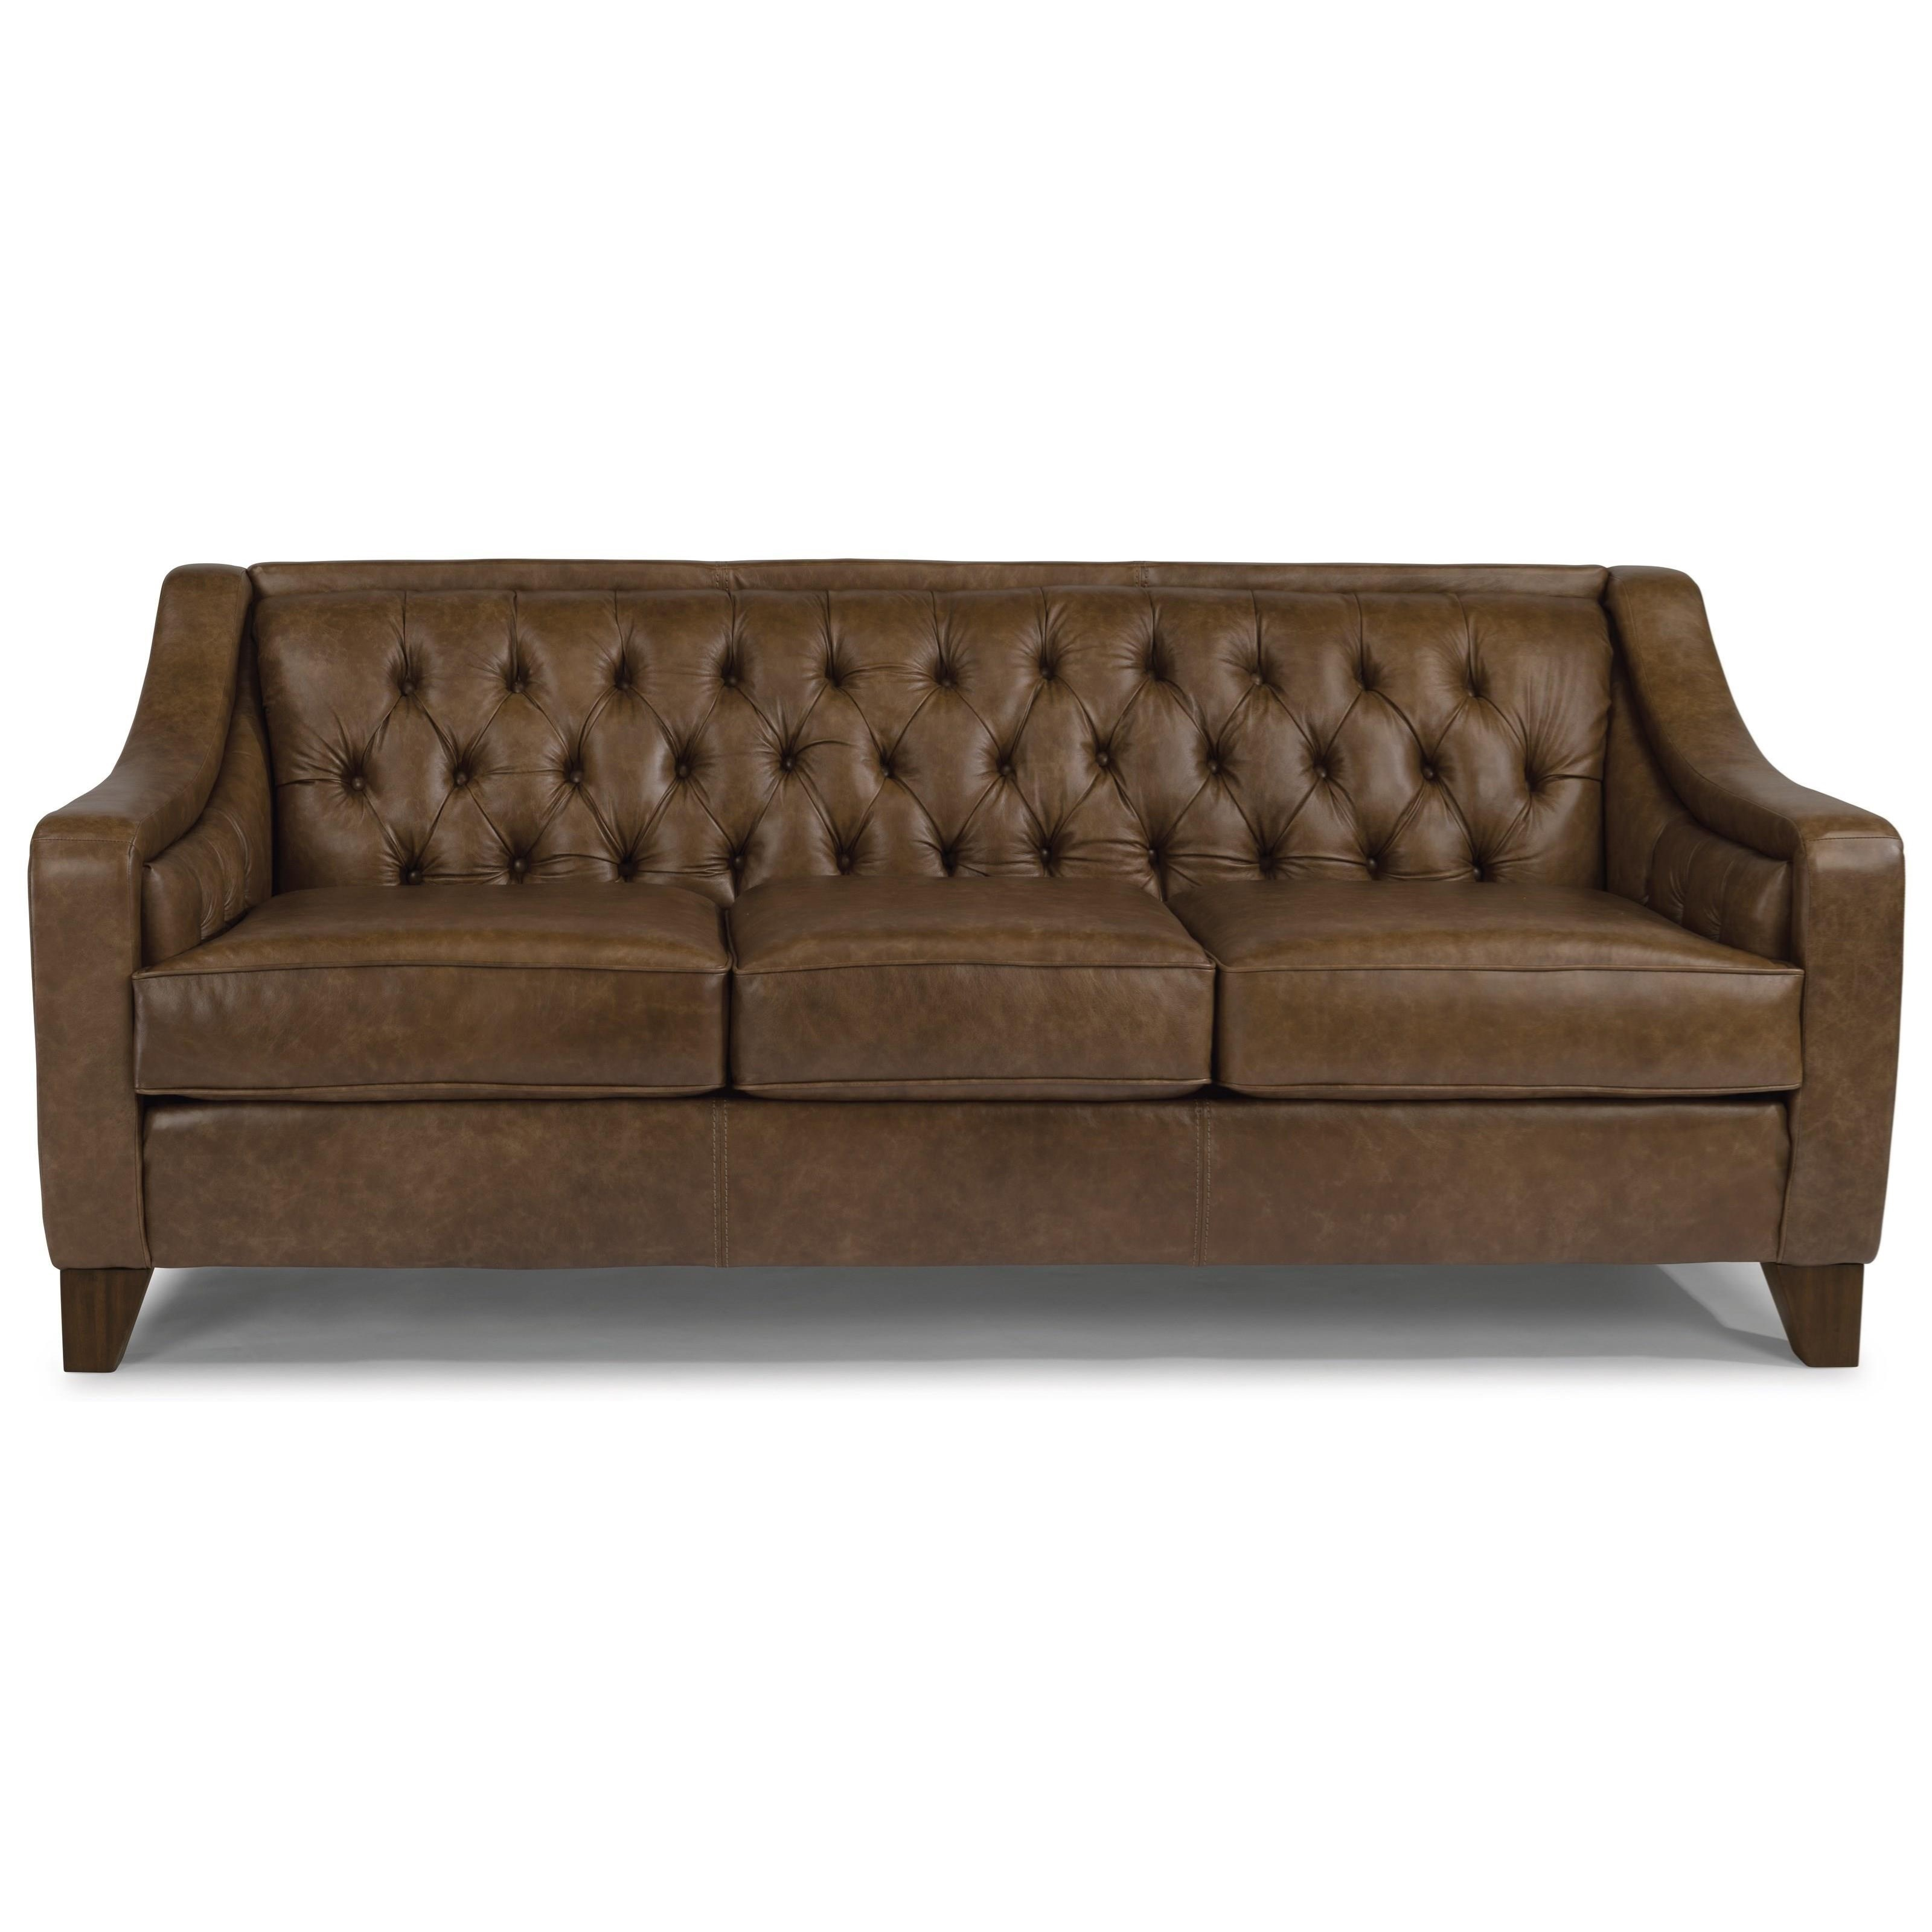 Flexsteel Sullivan Contemporary Sofa With Tufted Back